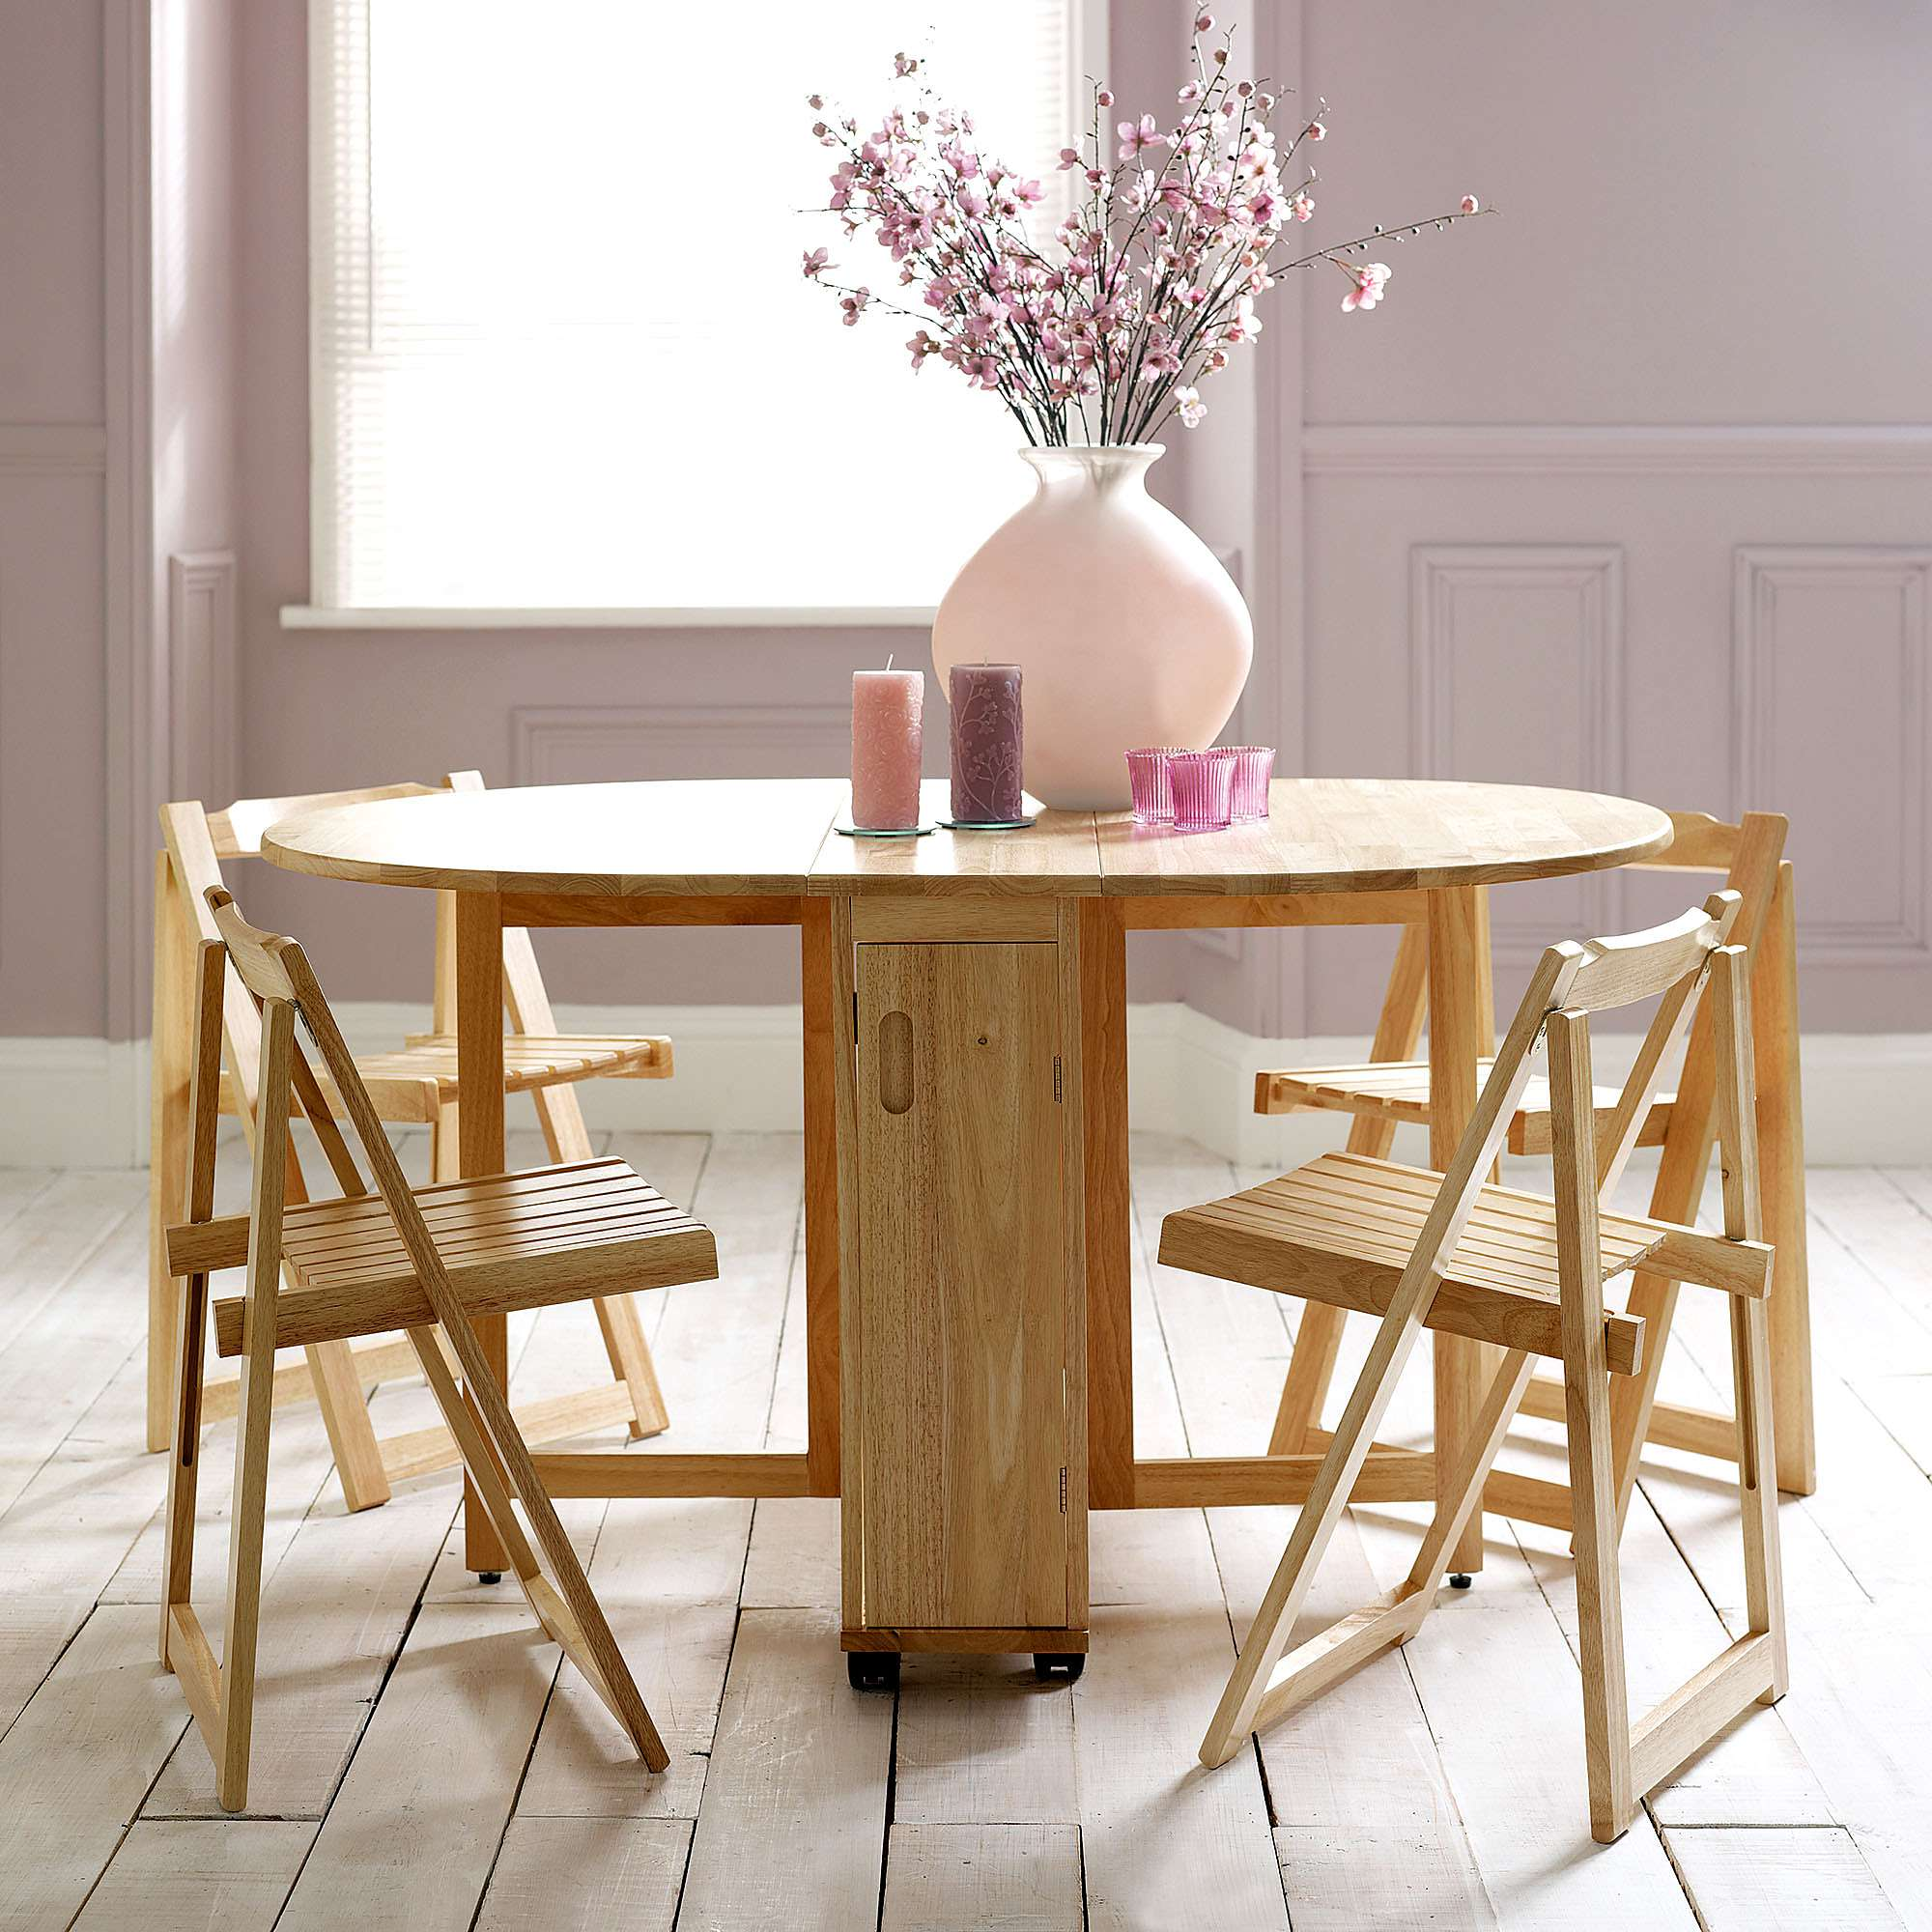 folding dining table open - Dining Tables For Small Spaces